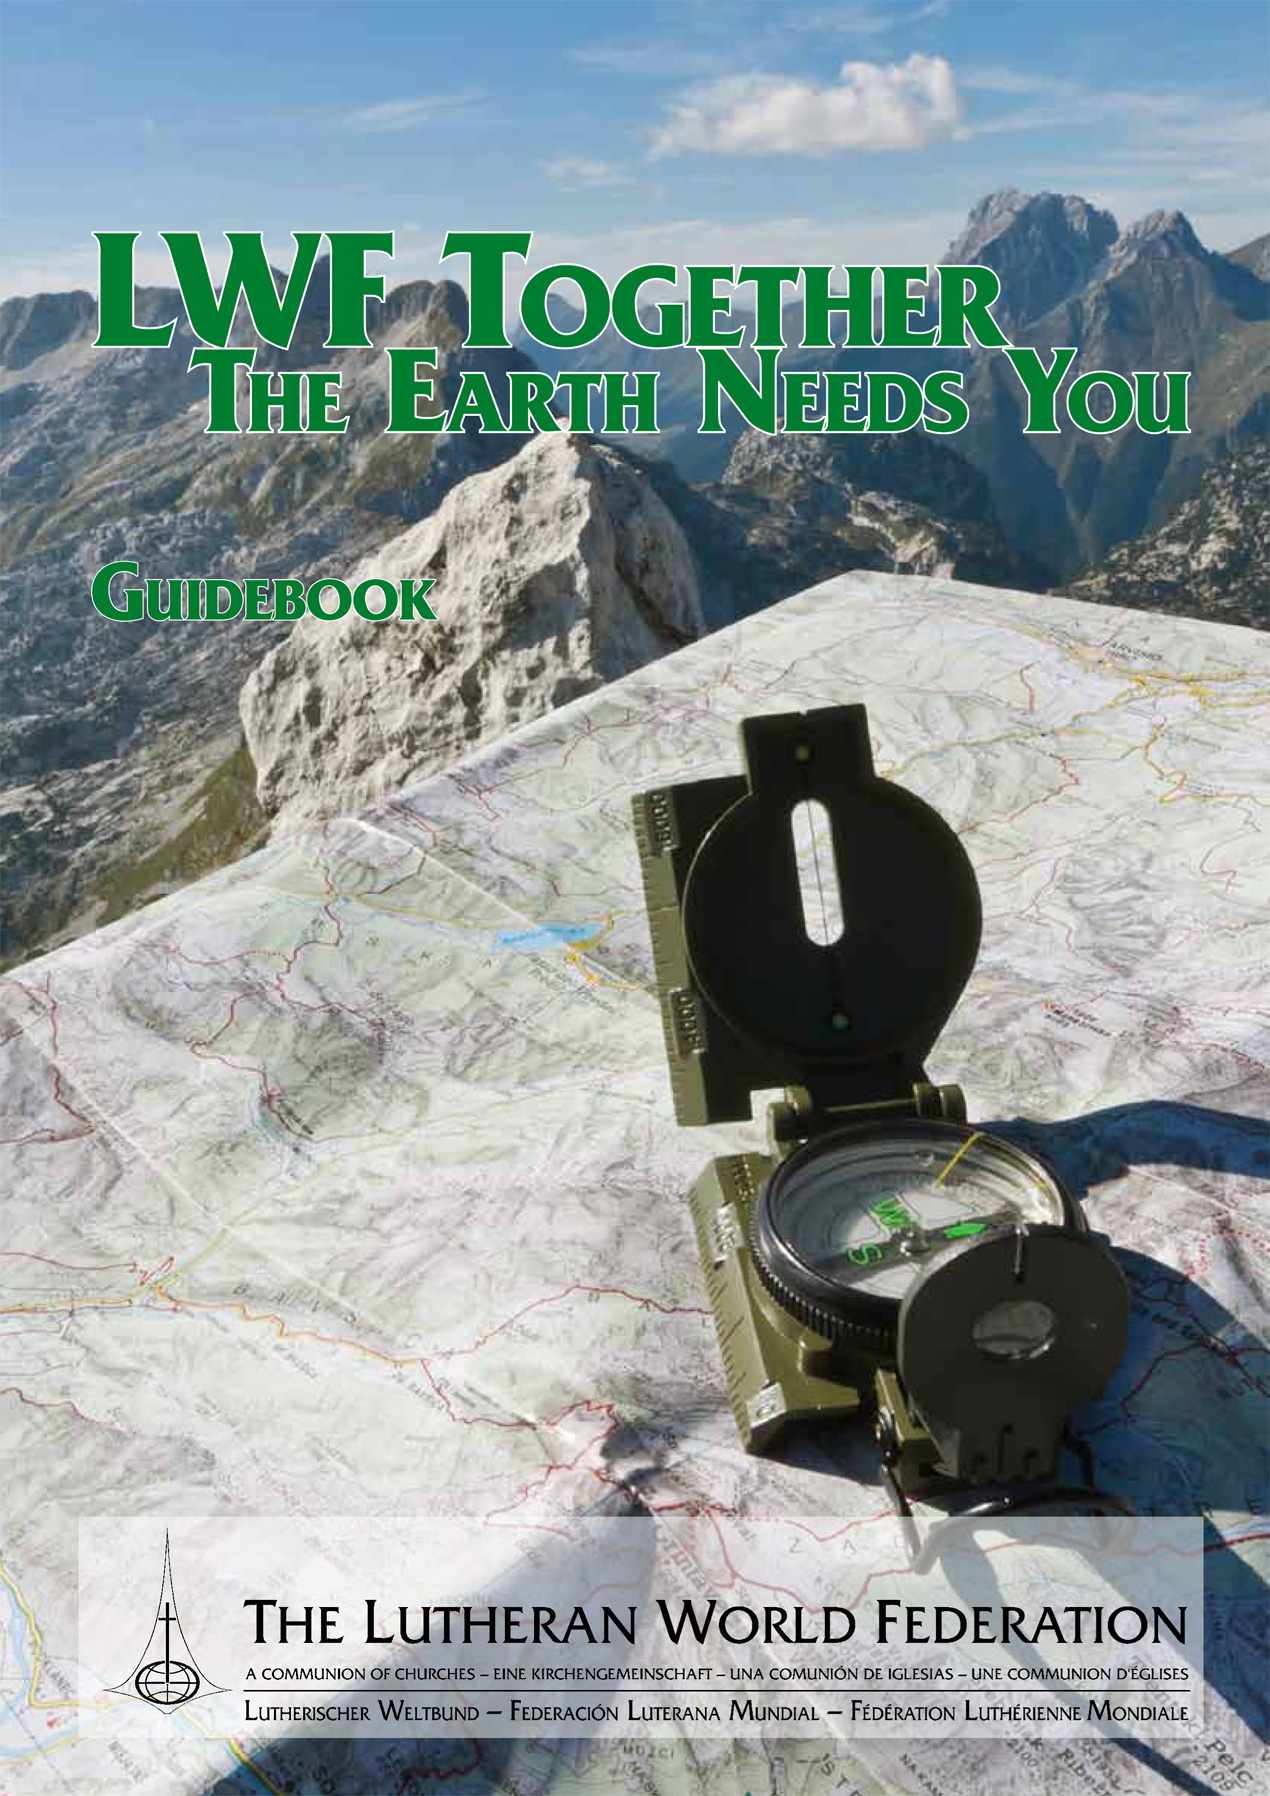 LWF Together the Earth needs you. Guidebook by DMD